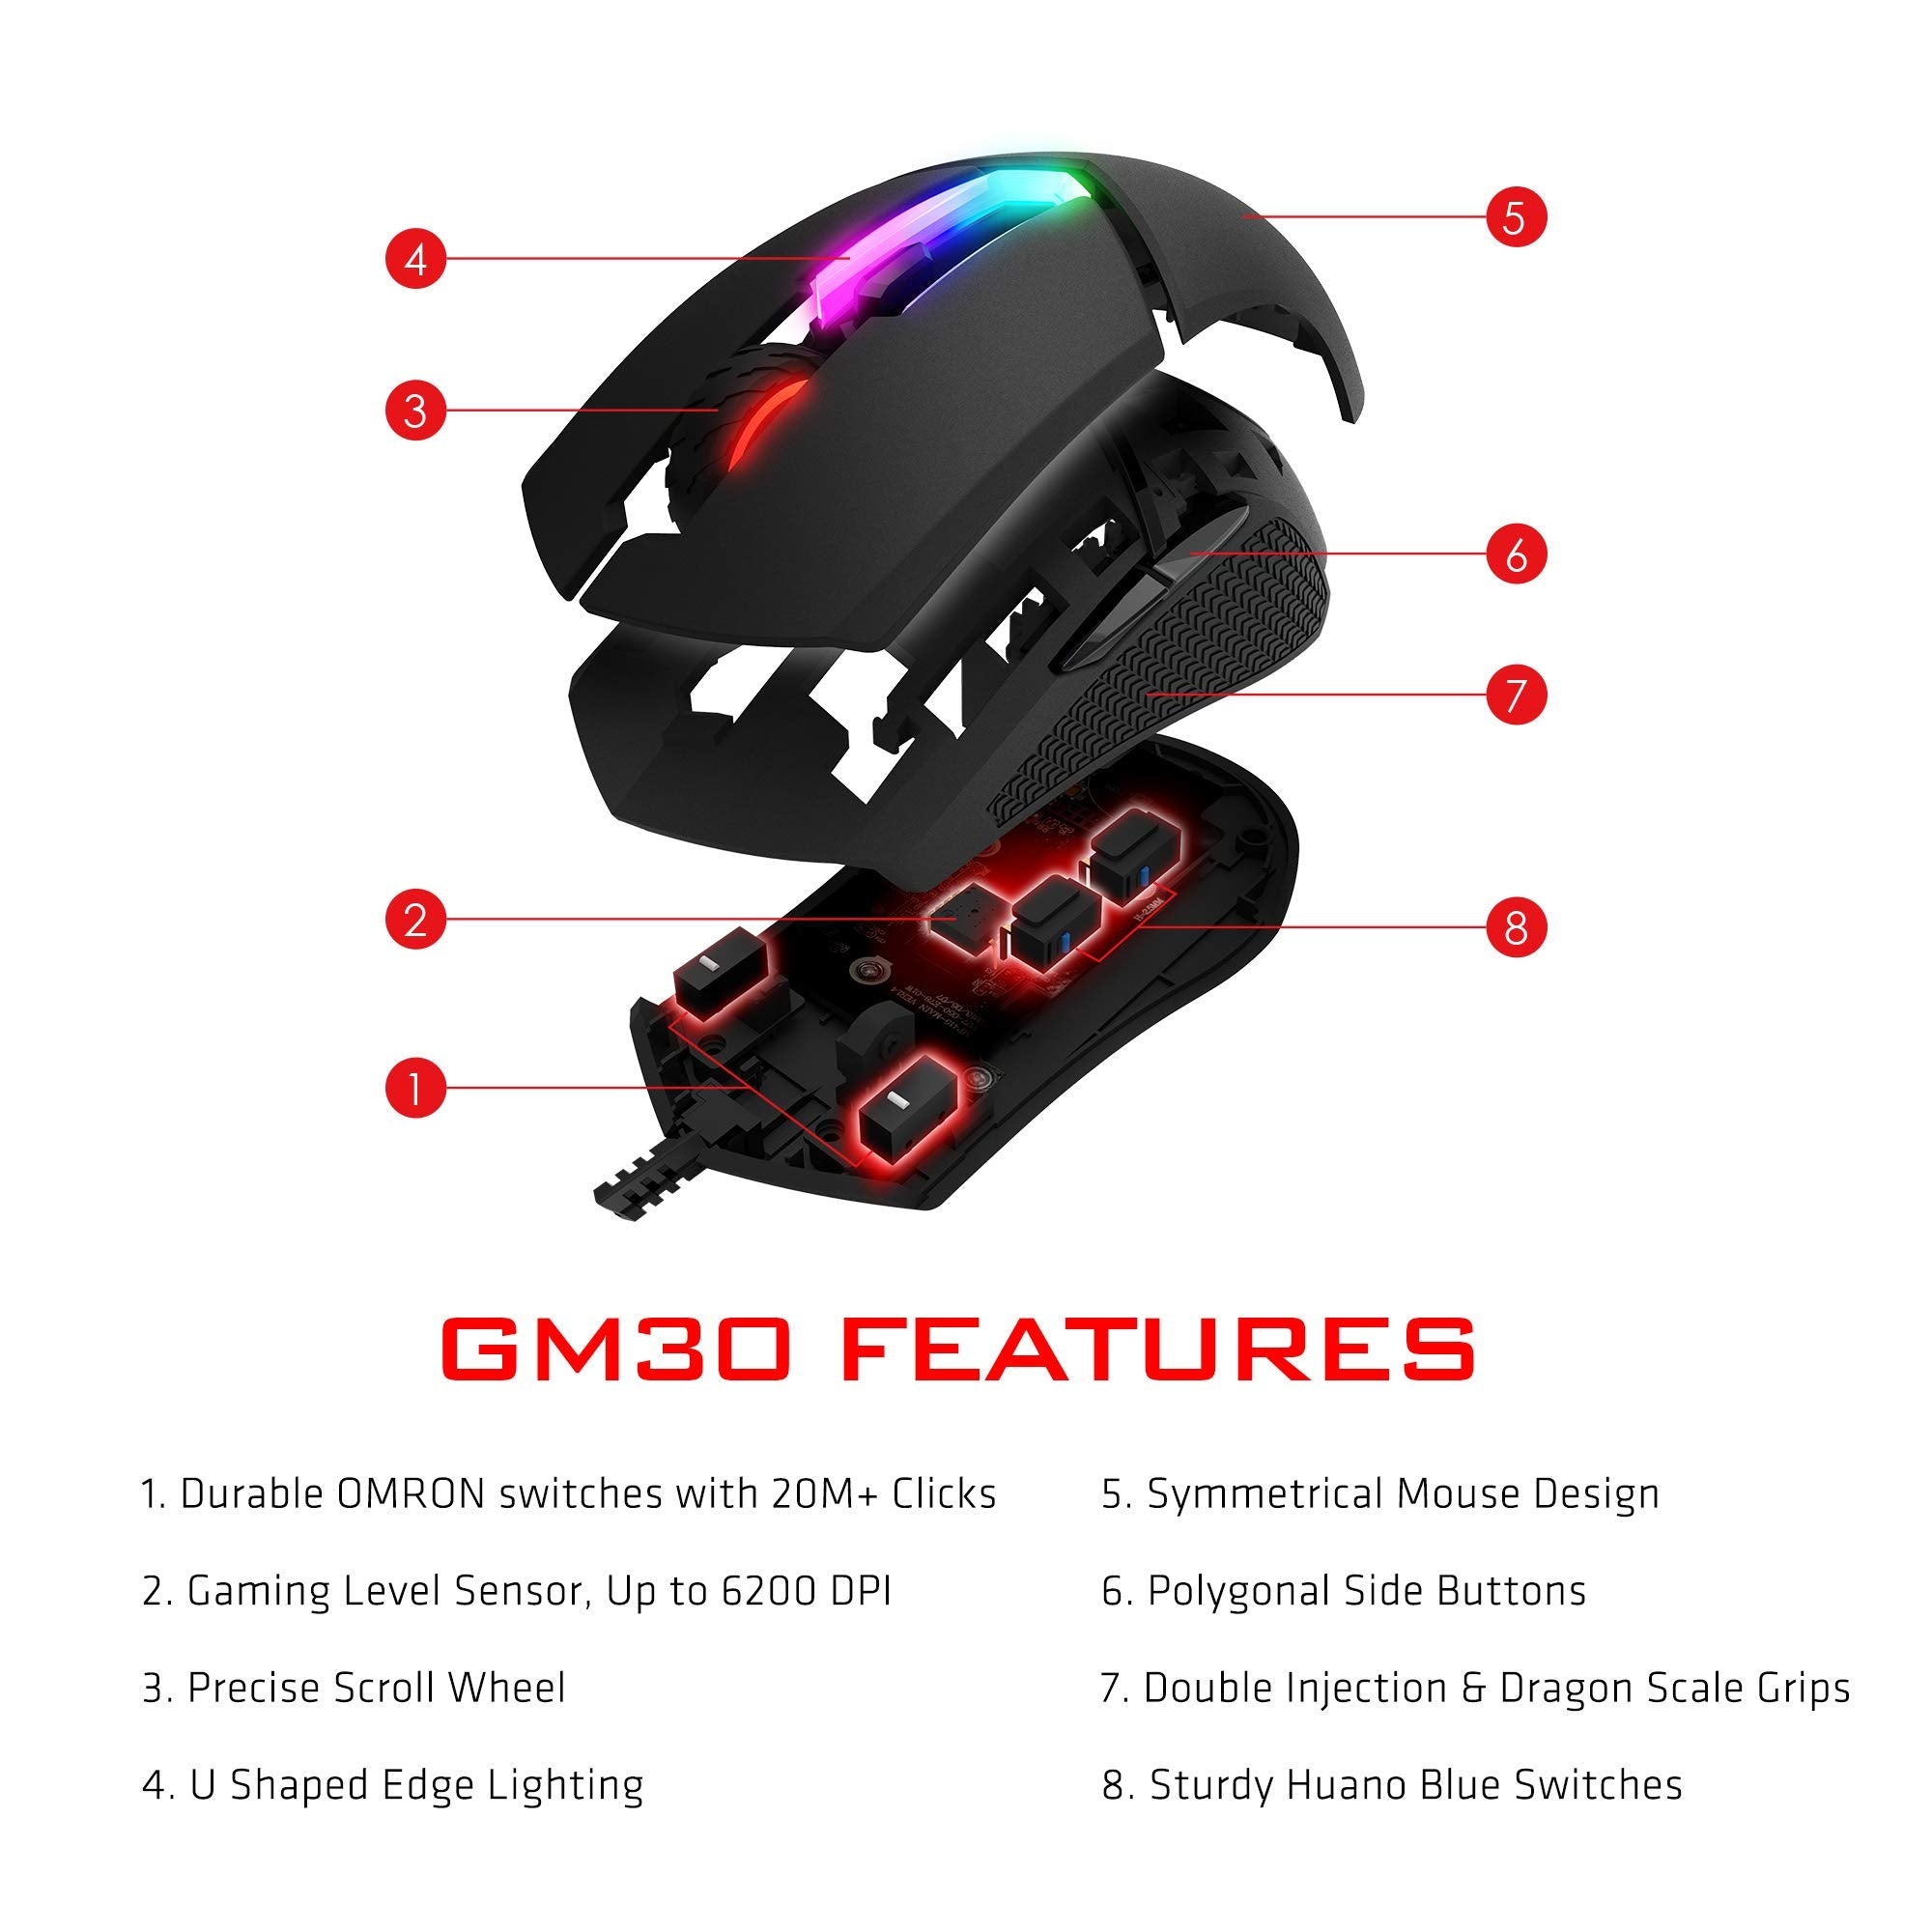 MSI Clutch GM30 6200 DPI Adjustable Omron Switch Symmetrical Design Wired RGB Gaming Mouse